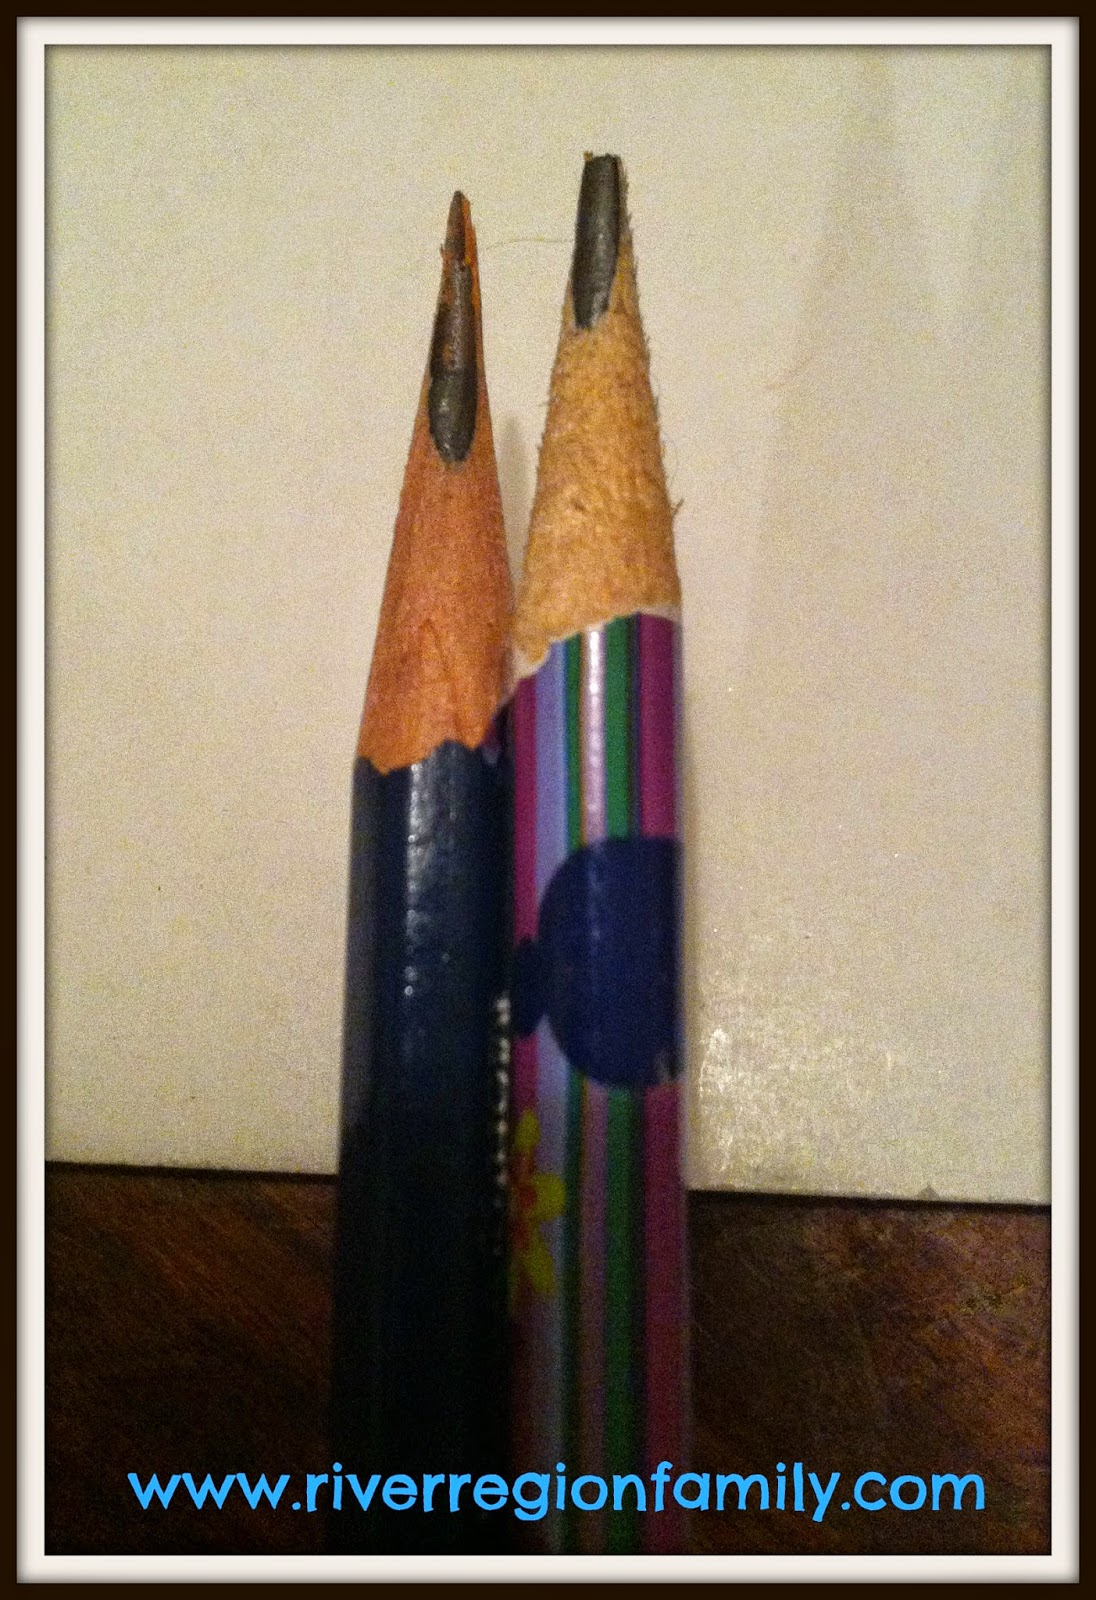 Coolest Pencil In The World River Region Family A Tale Of Pencil Woe Or How I Found